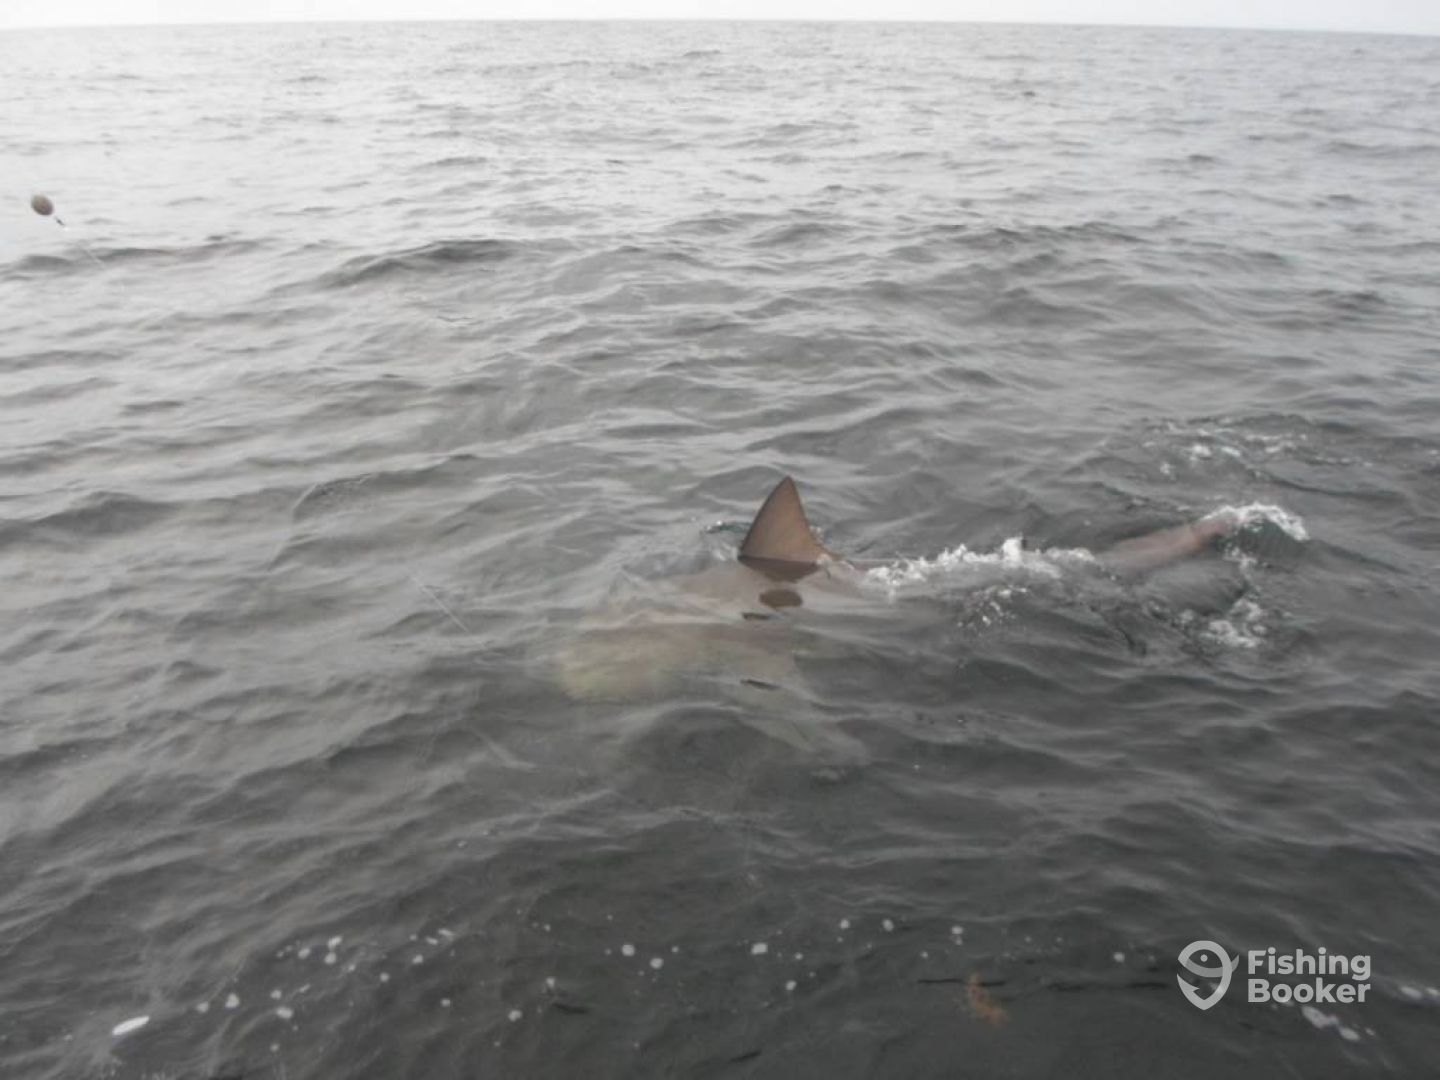 300lb Bull Shark caught and released